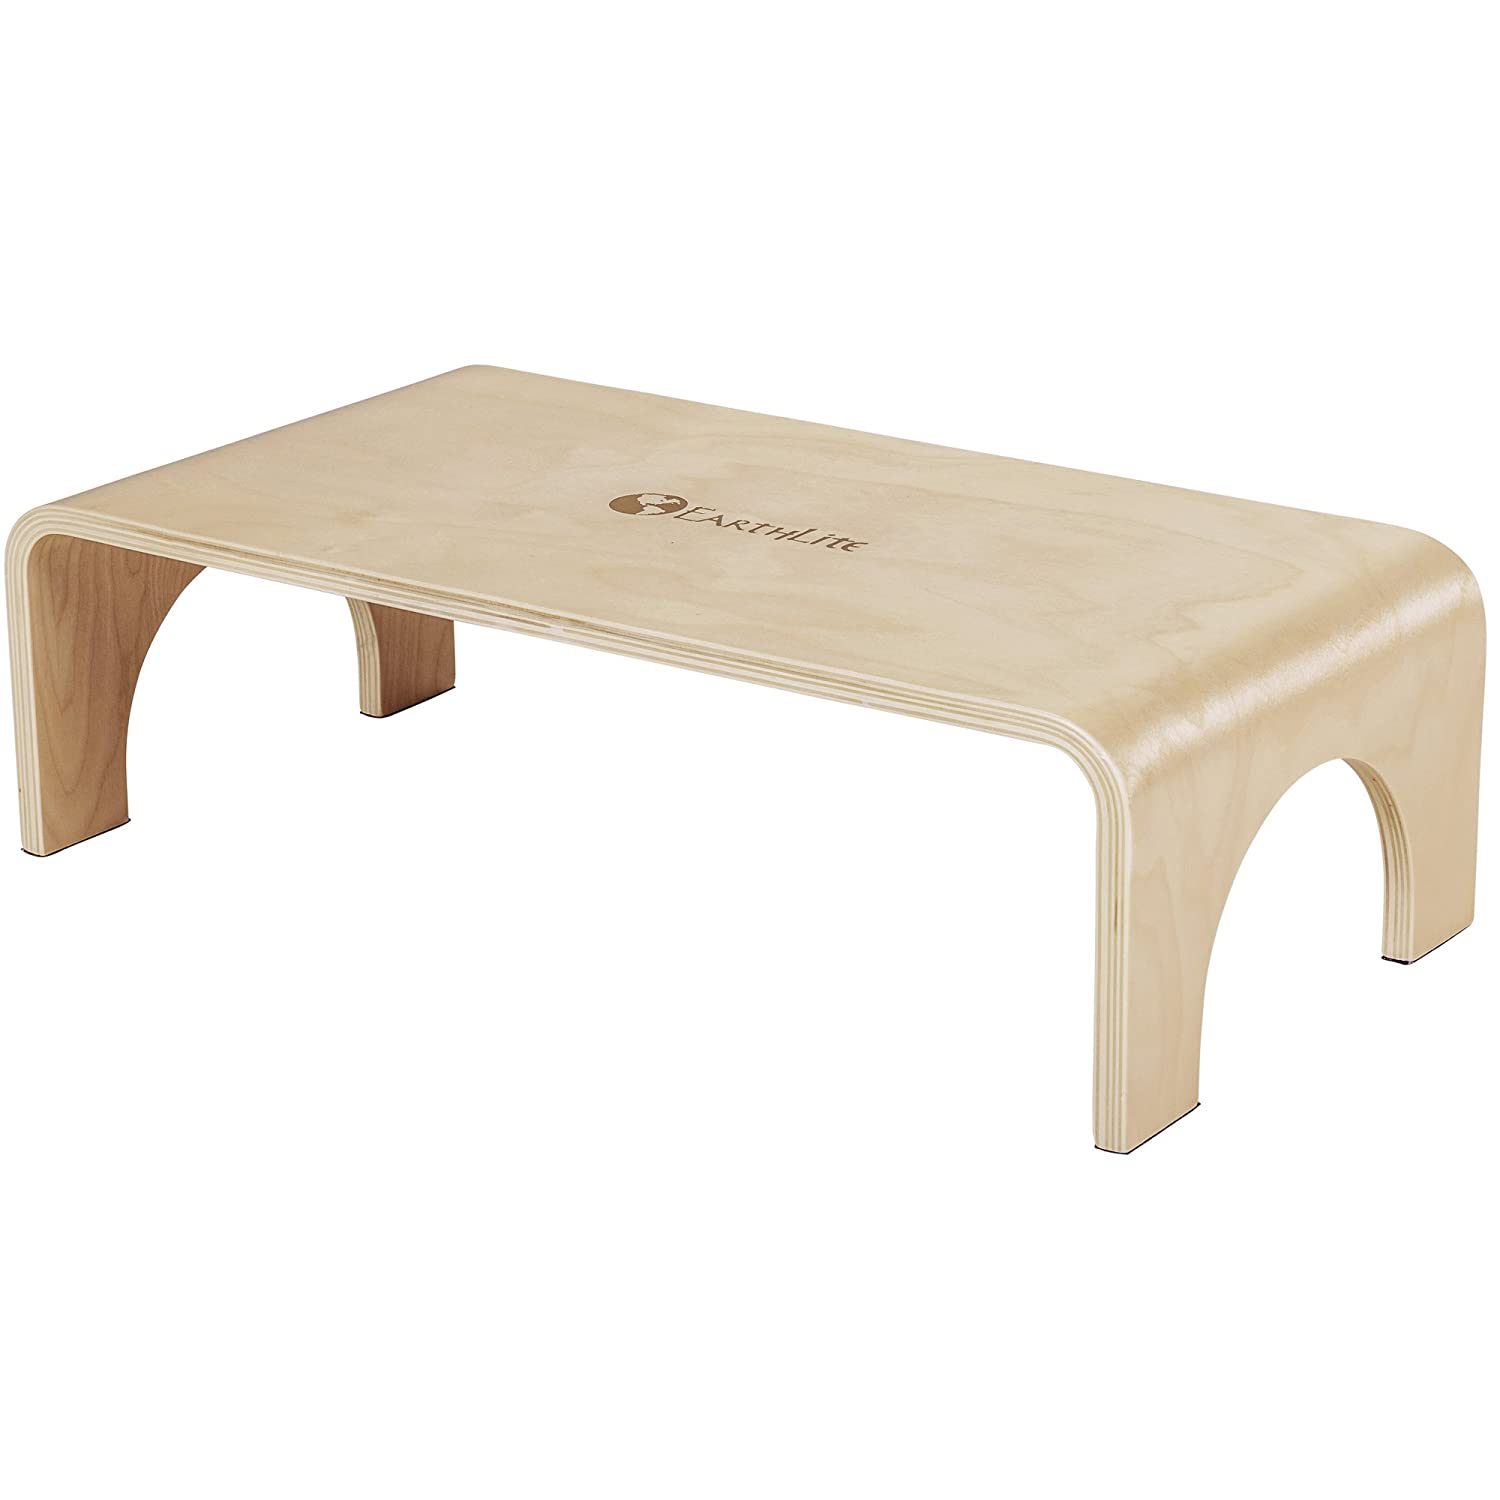 EARTHLITE Wooden Step Stool Big Step - 7'' High, Strong & Stable 40900